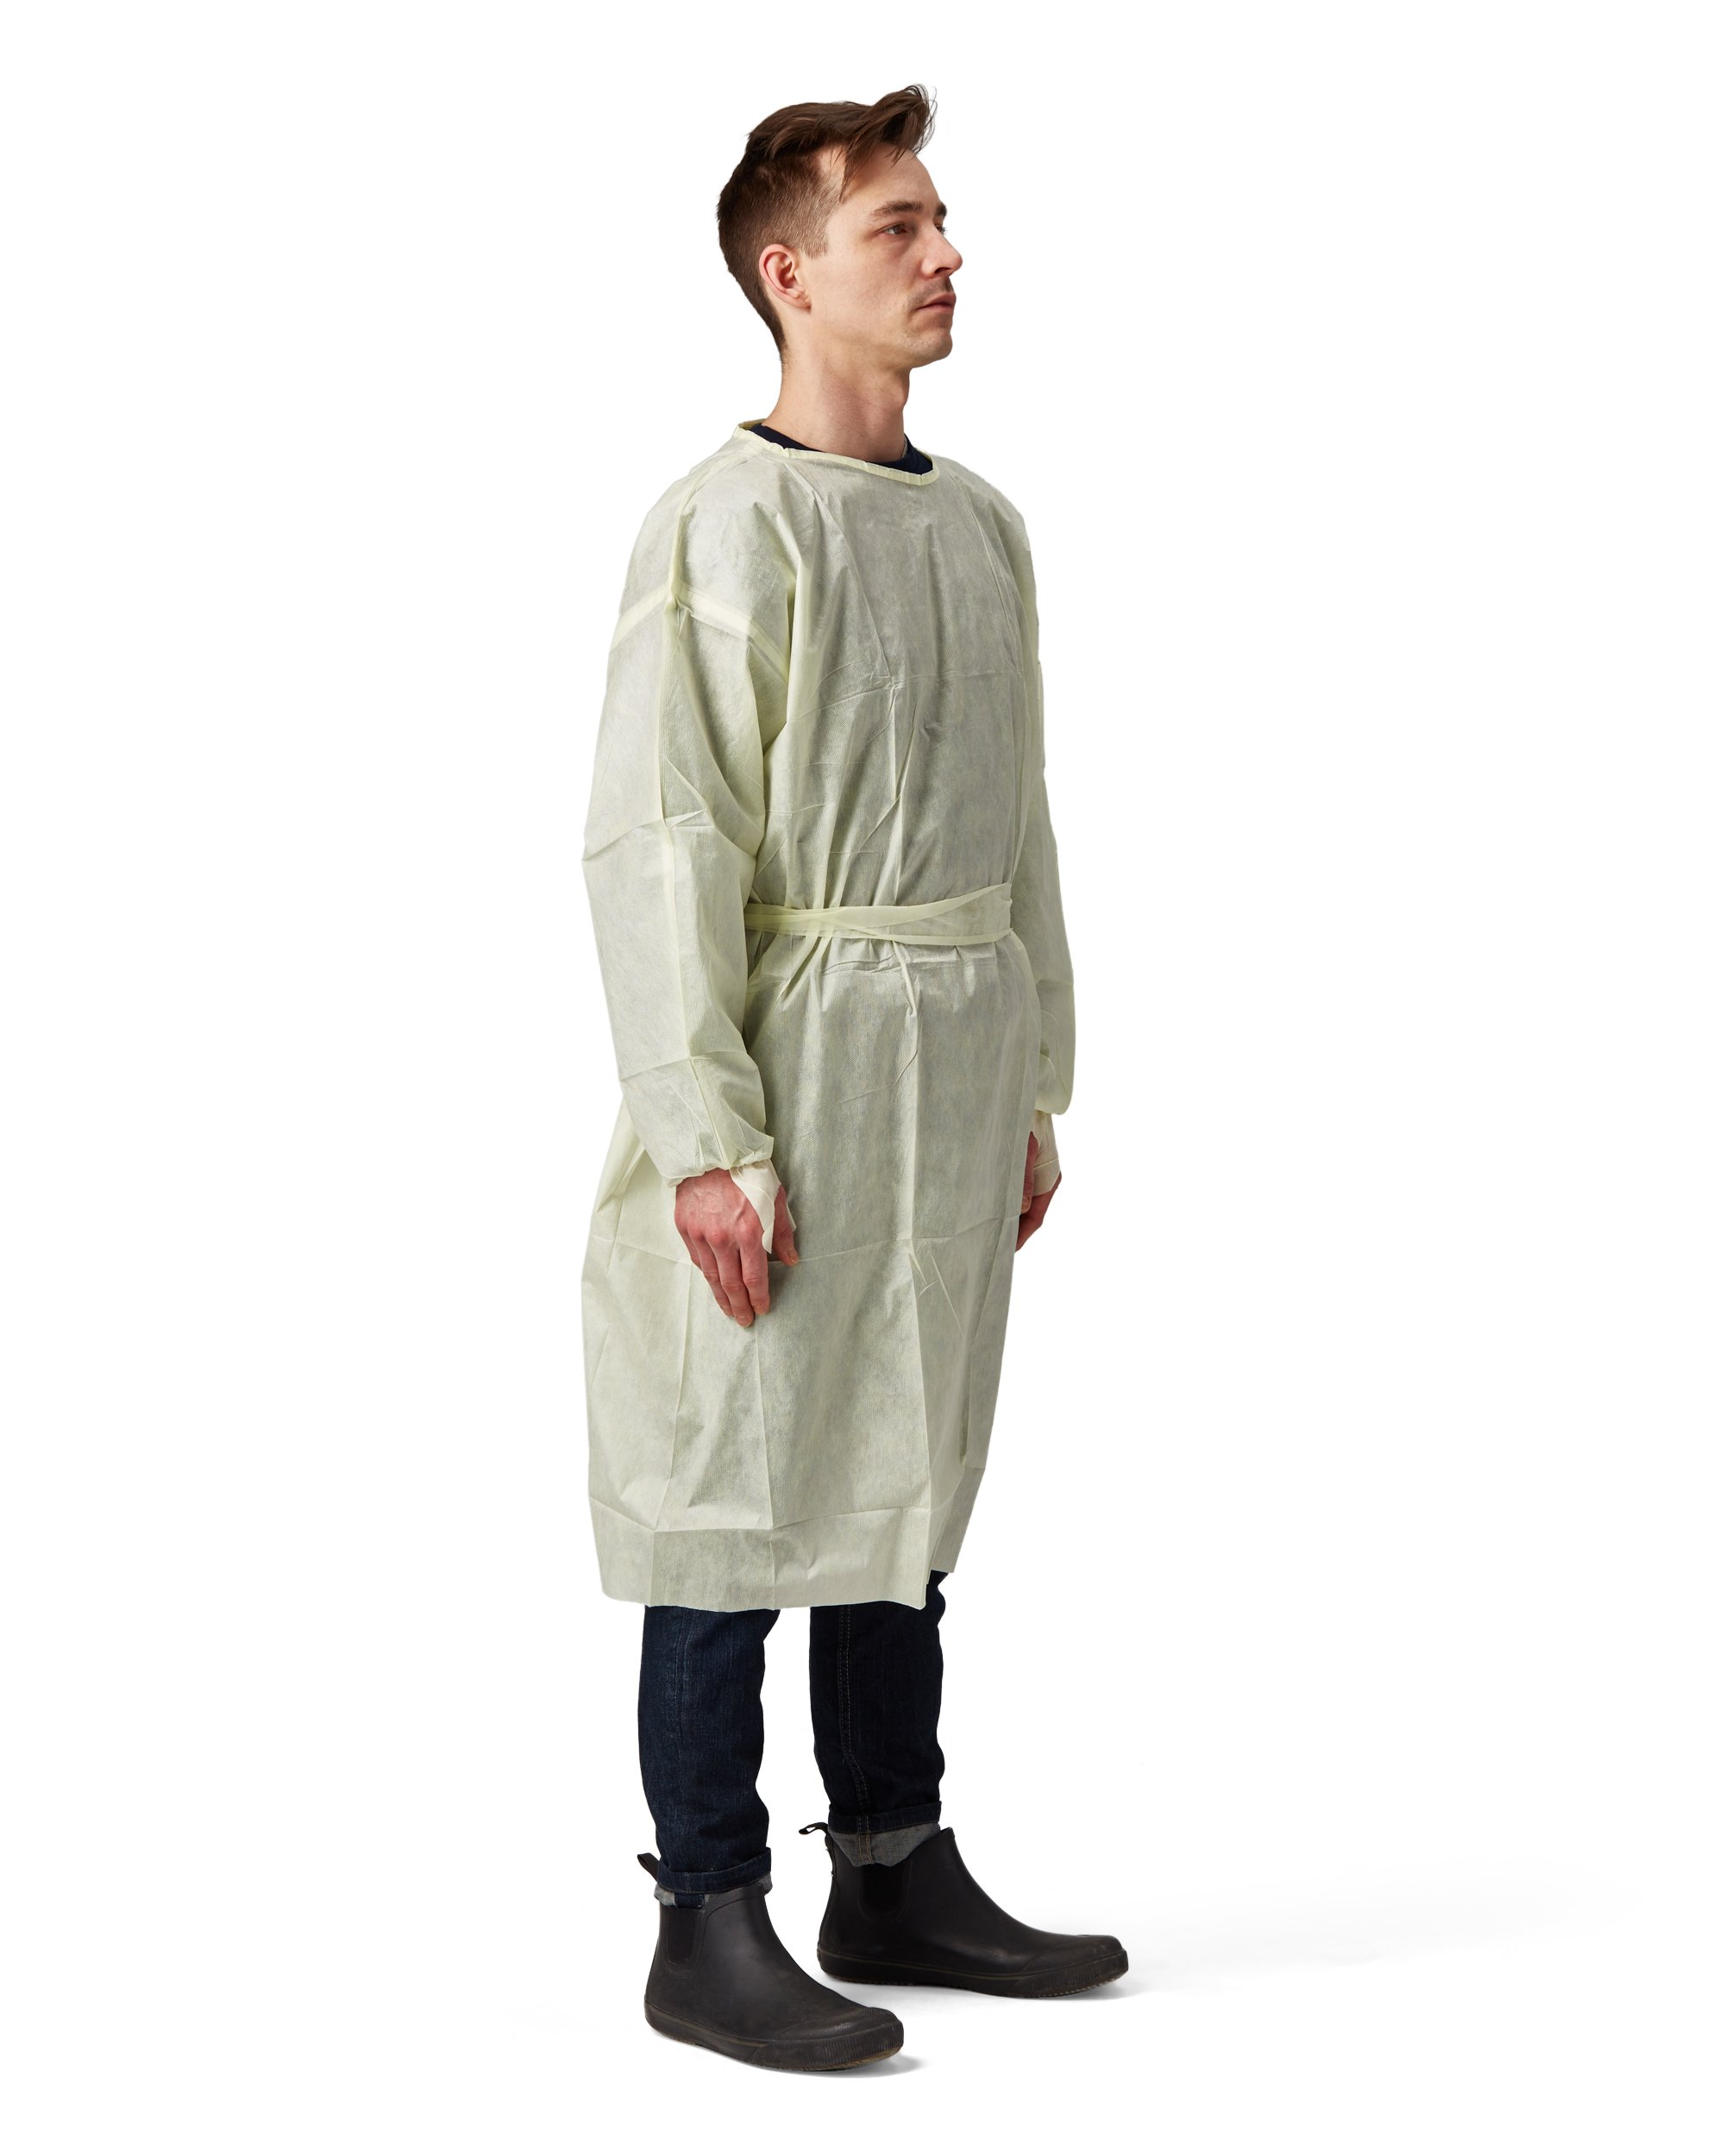 Disposable SMS Polypropylene Isolation Gown, with Elastic cuffs, Breathable, flexible, and fluid resistant. Professional Surgical gowns & Lab Coats. (10 Units, Regular)